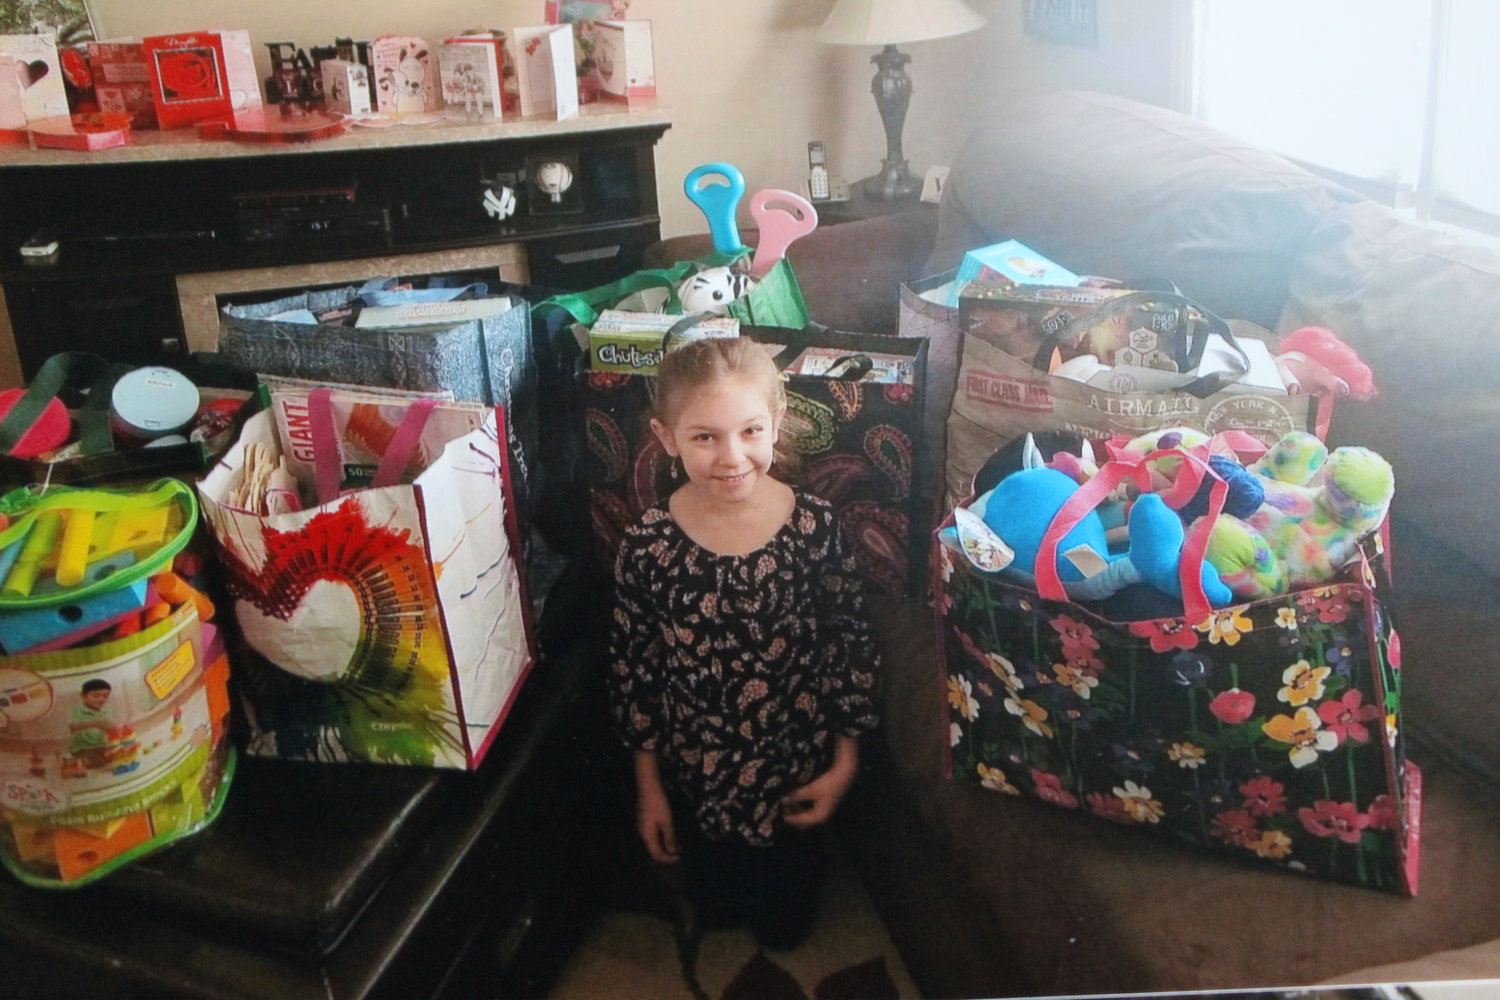 Emma Vulpi, 7, of East Meadow, recently went on a shopping spree with her birthday money and donated all her purchases to the Child Life Program at NYU Winthrop Hospital in Mineola.